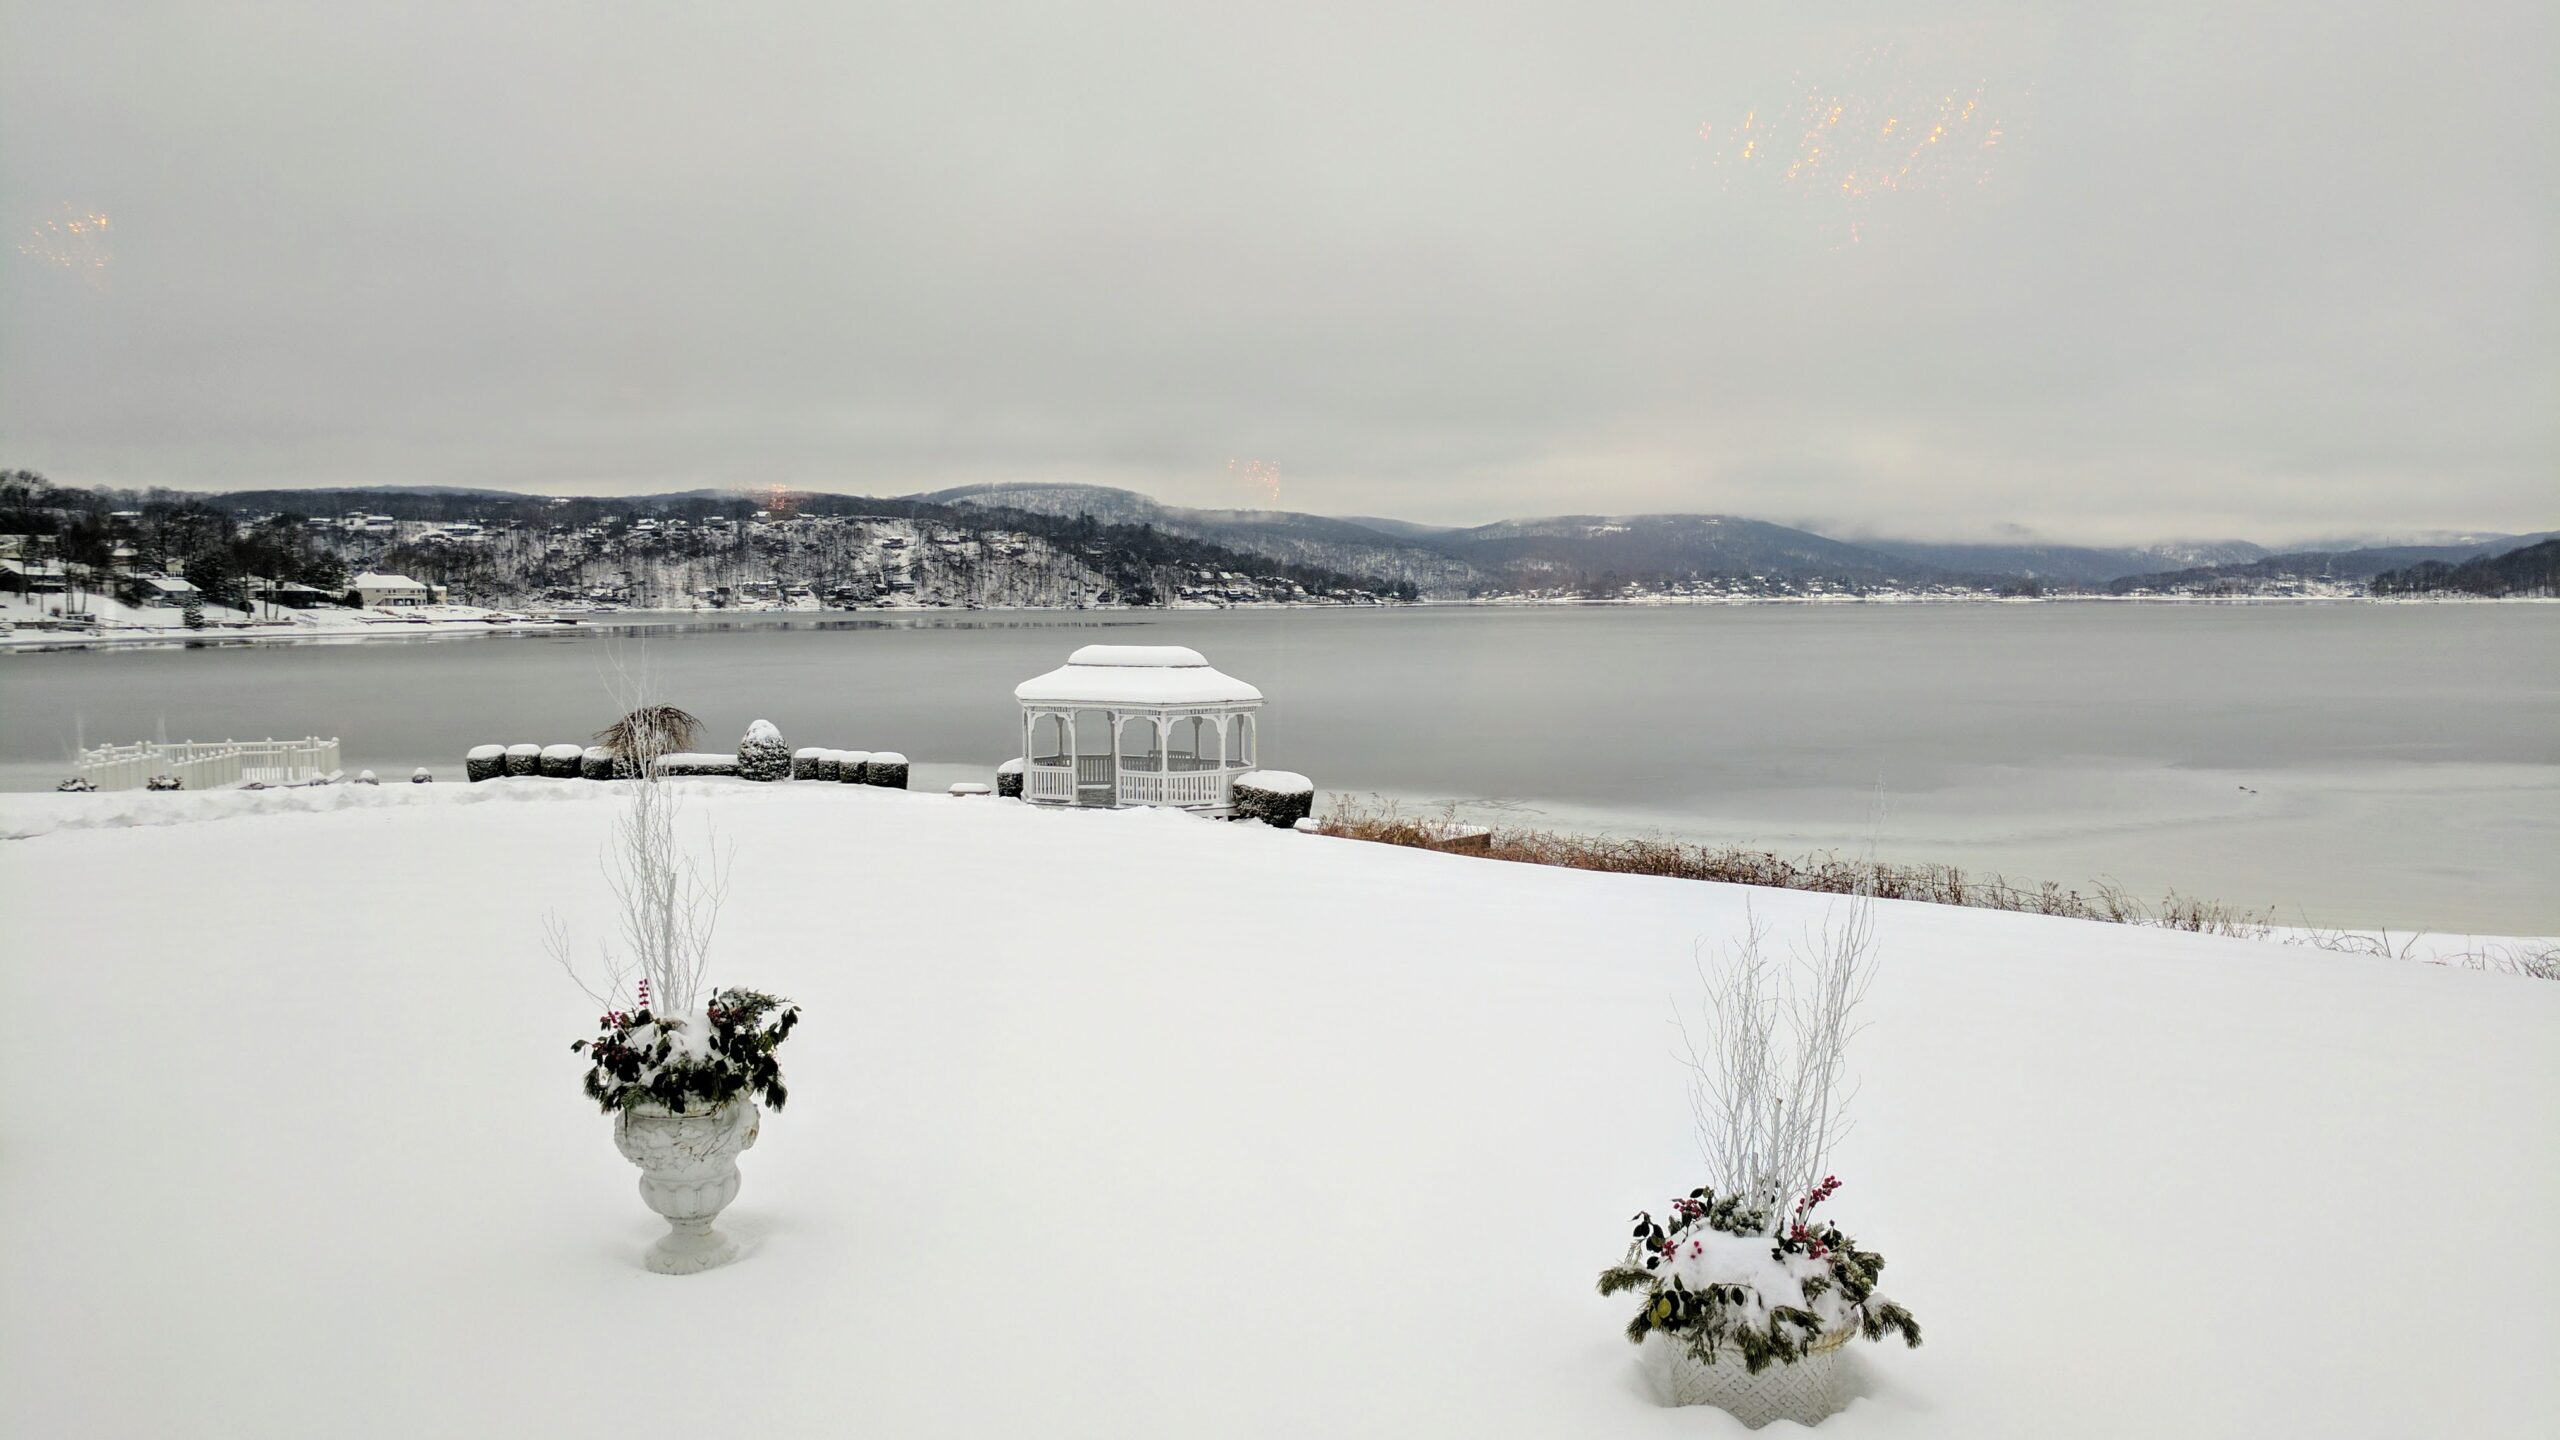 Scenic winter landscape overlooking snow covered lake with gazebo in background at Candlewood Inn Wedding